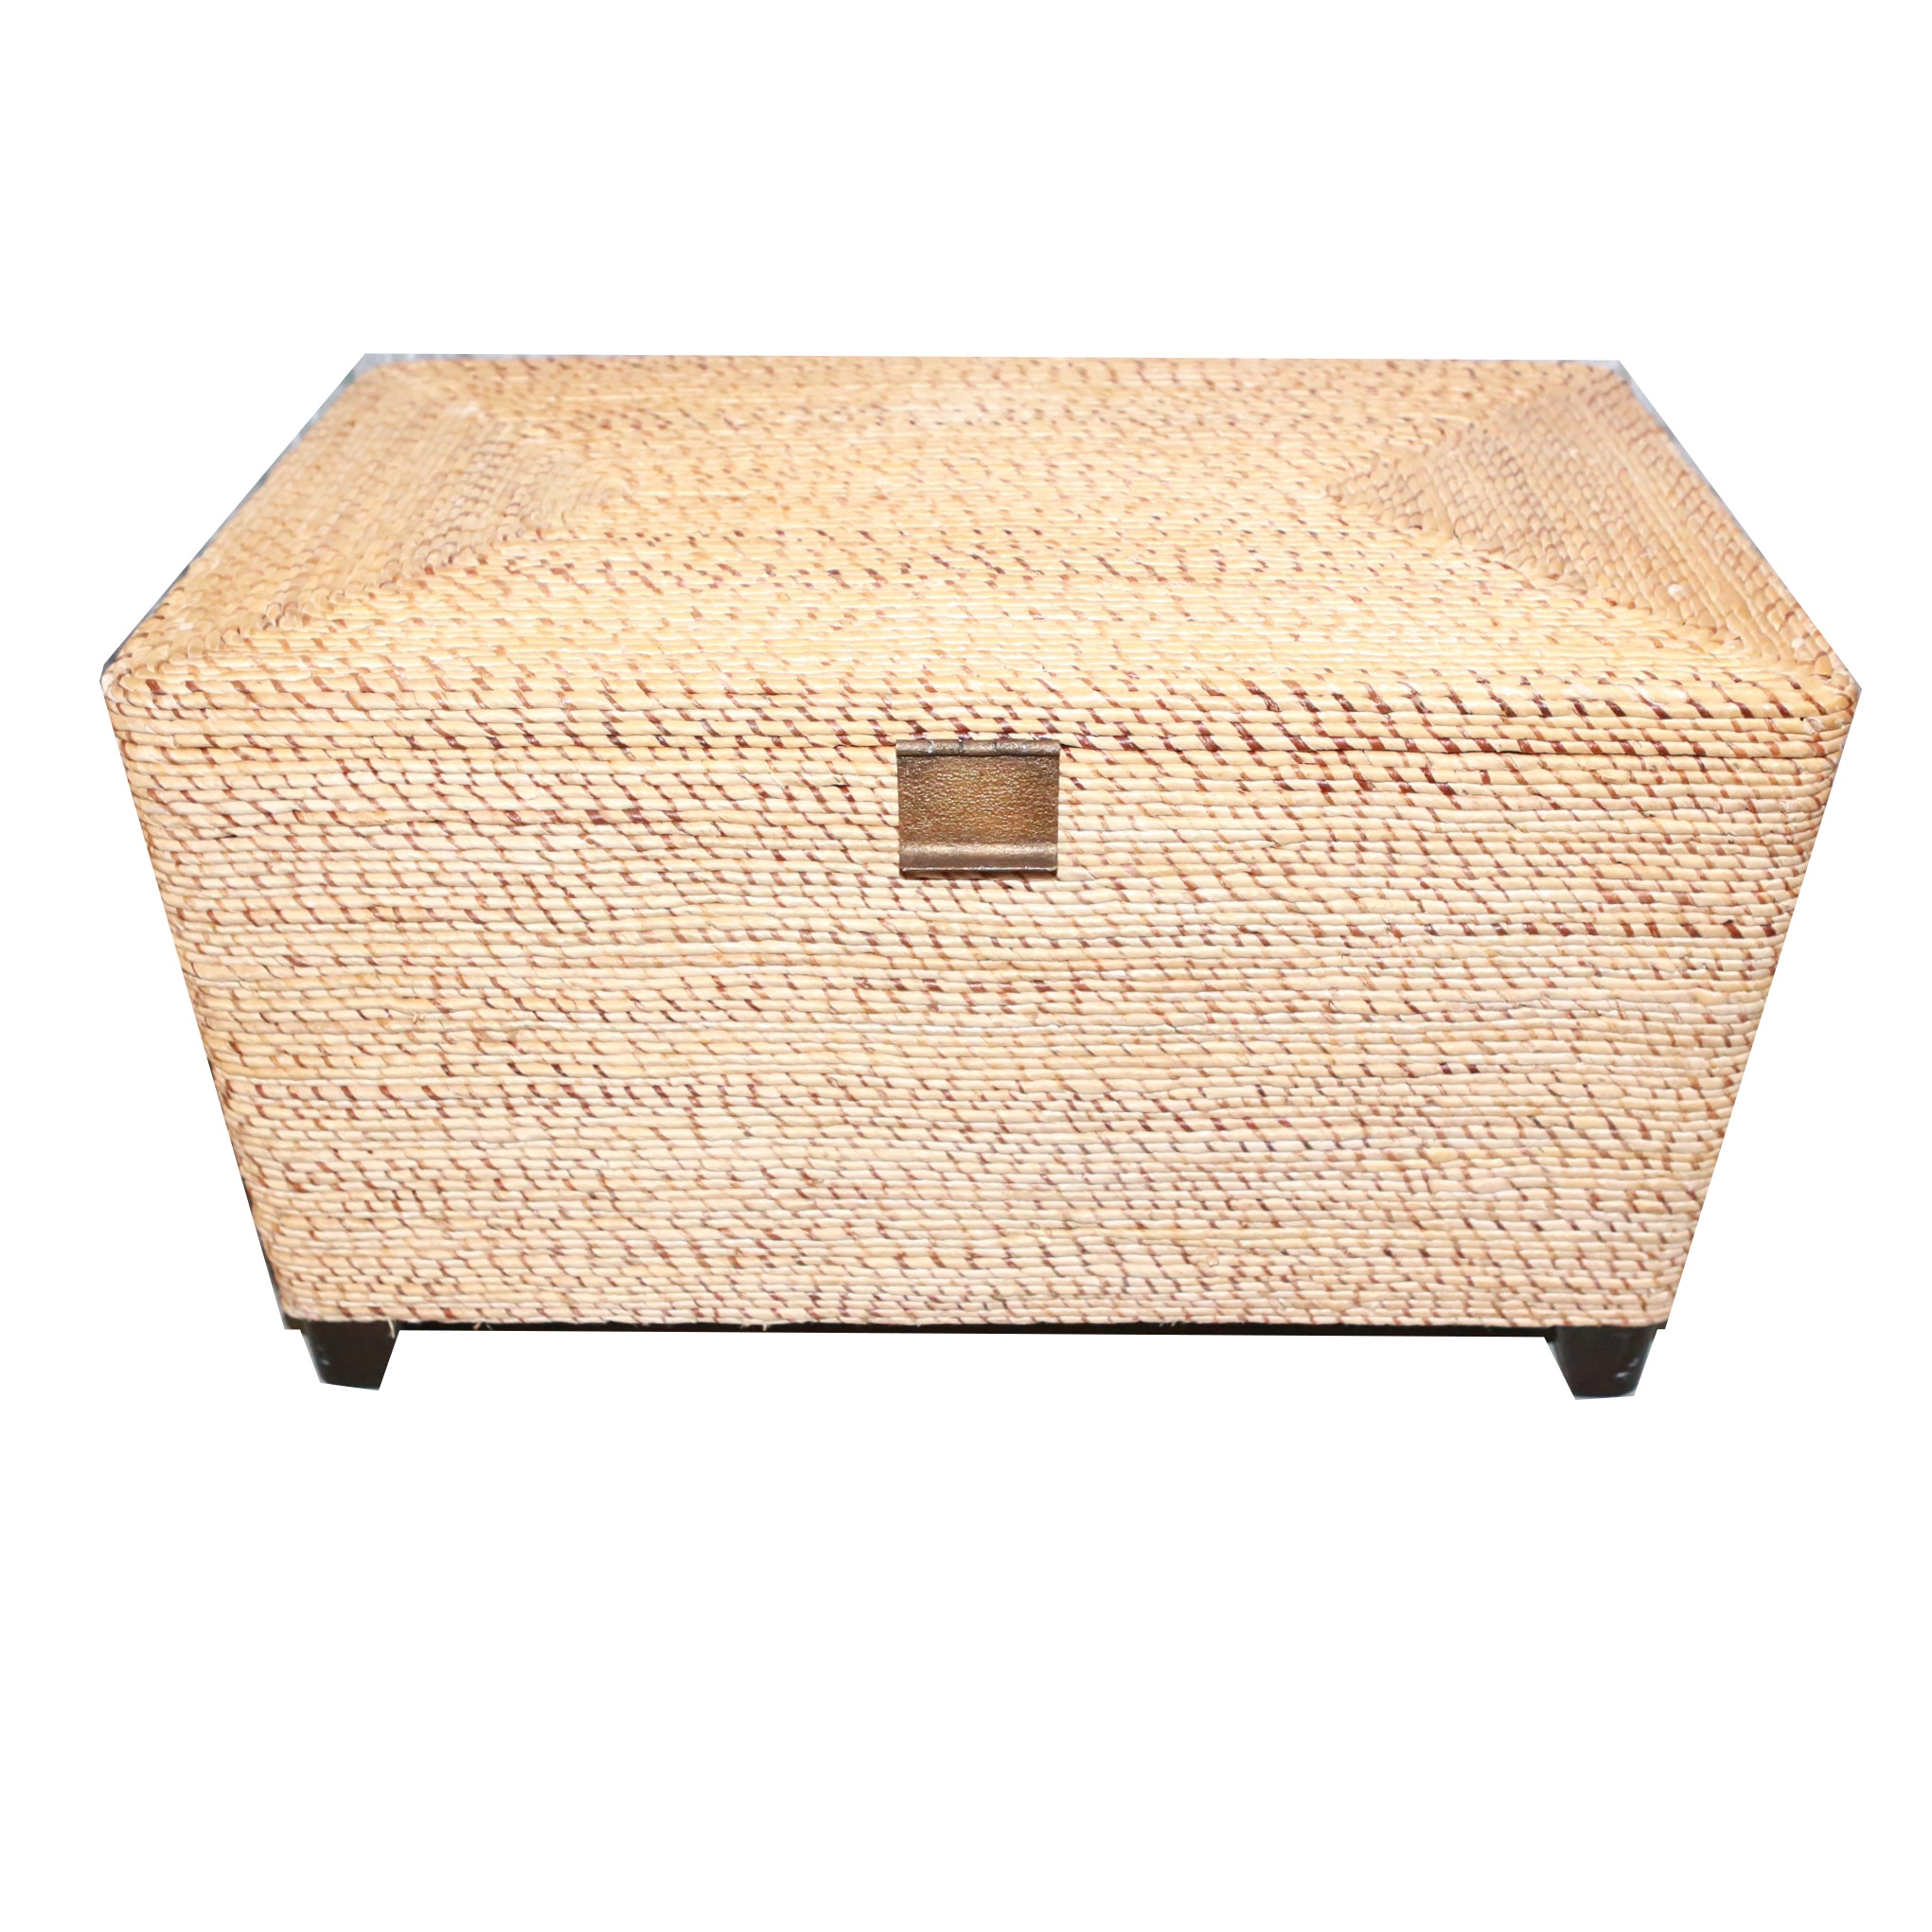 Pier 1 Imports Wicker Storage Chest ...